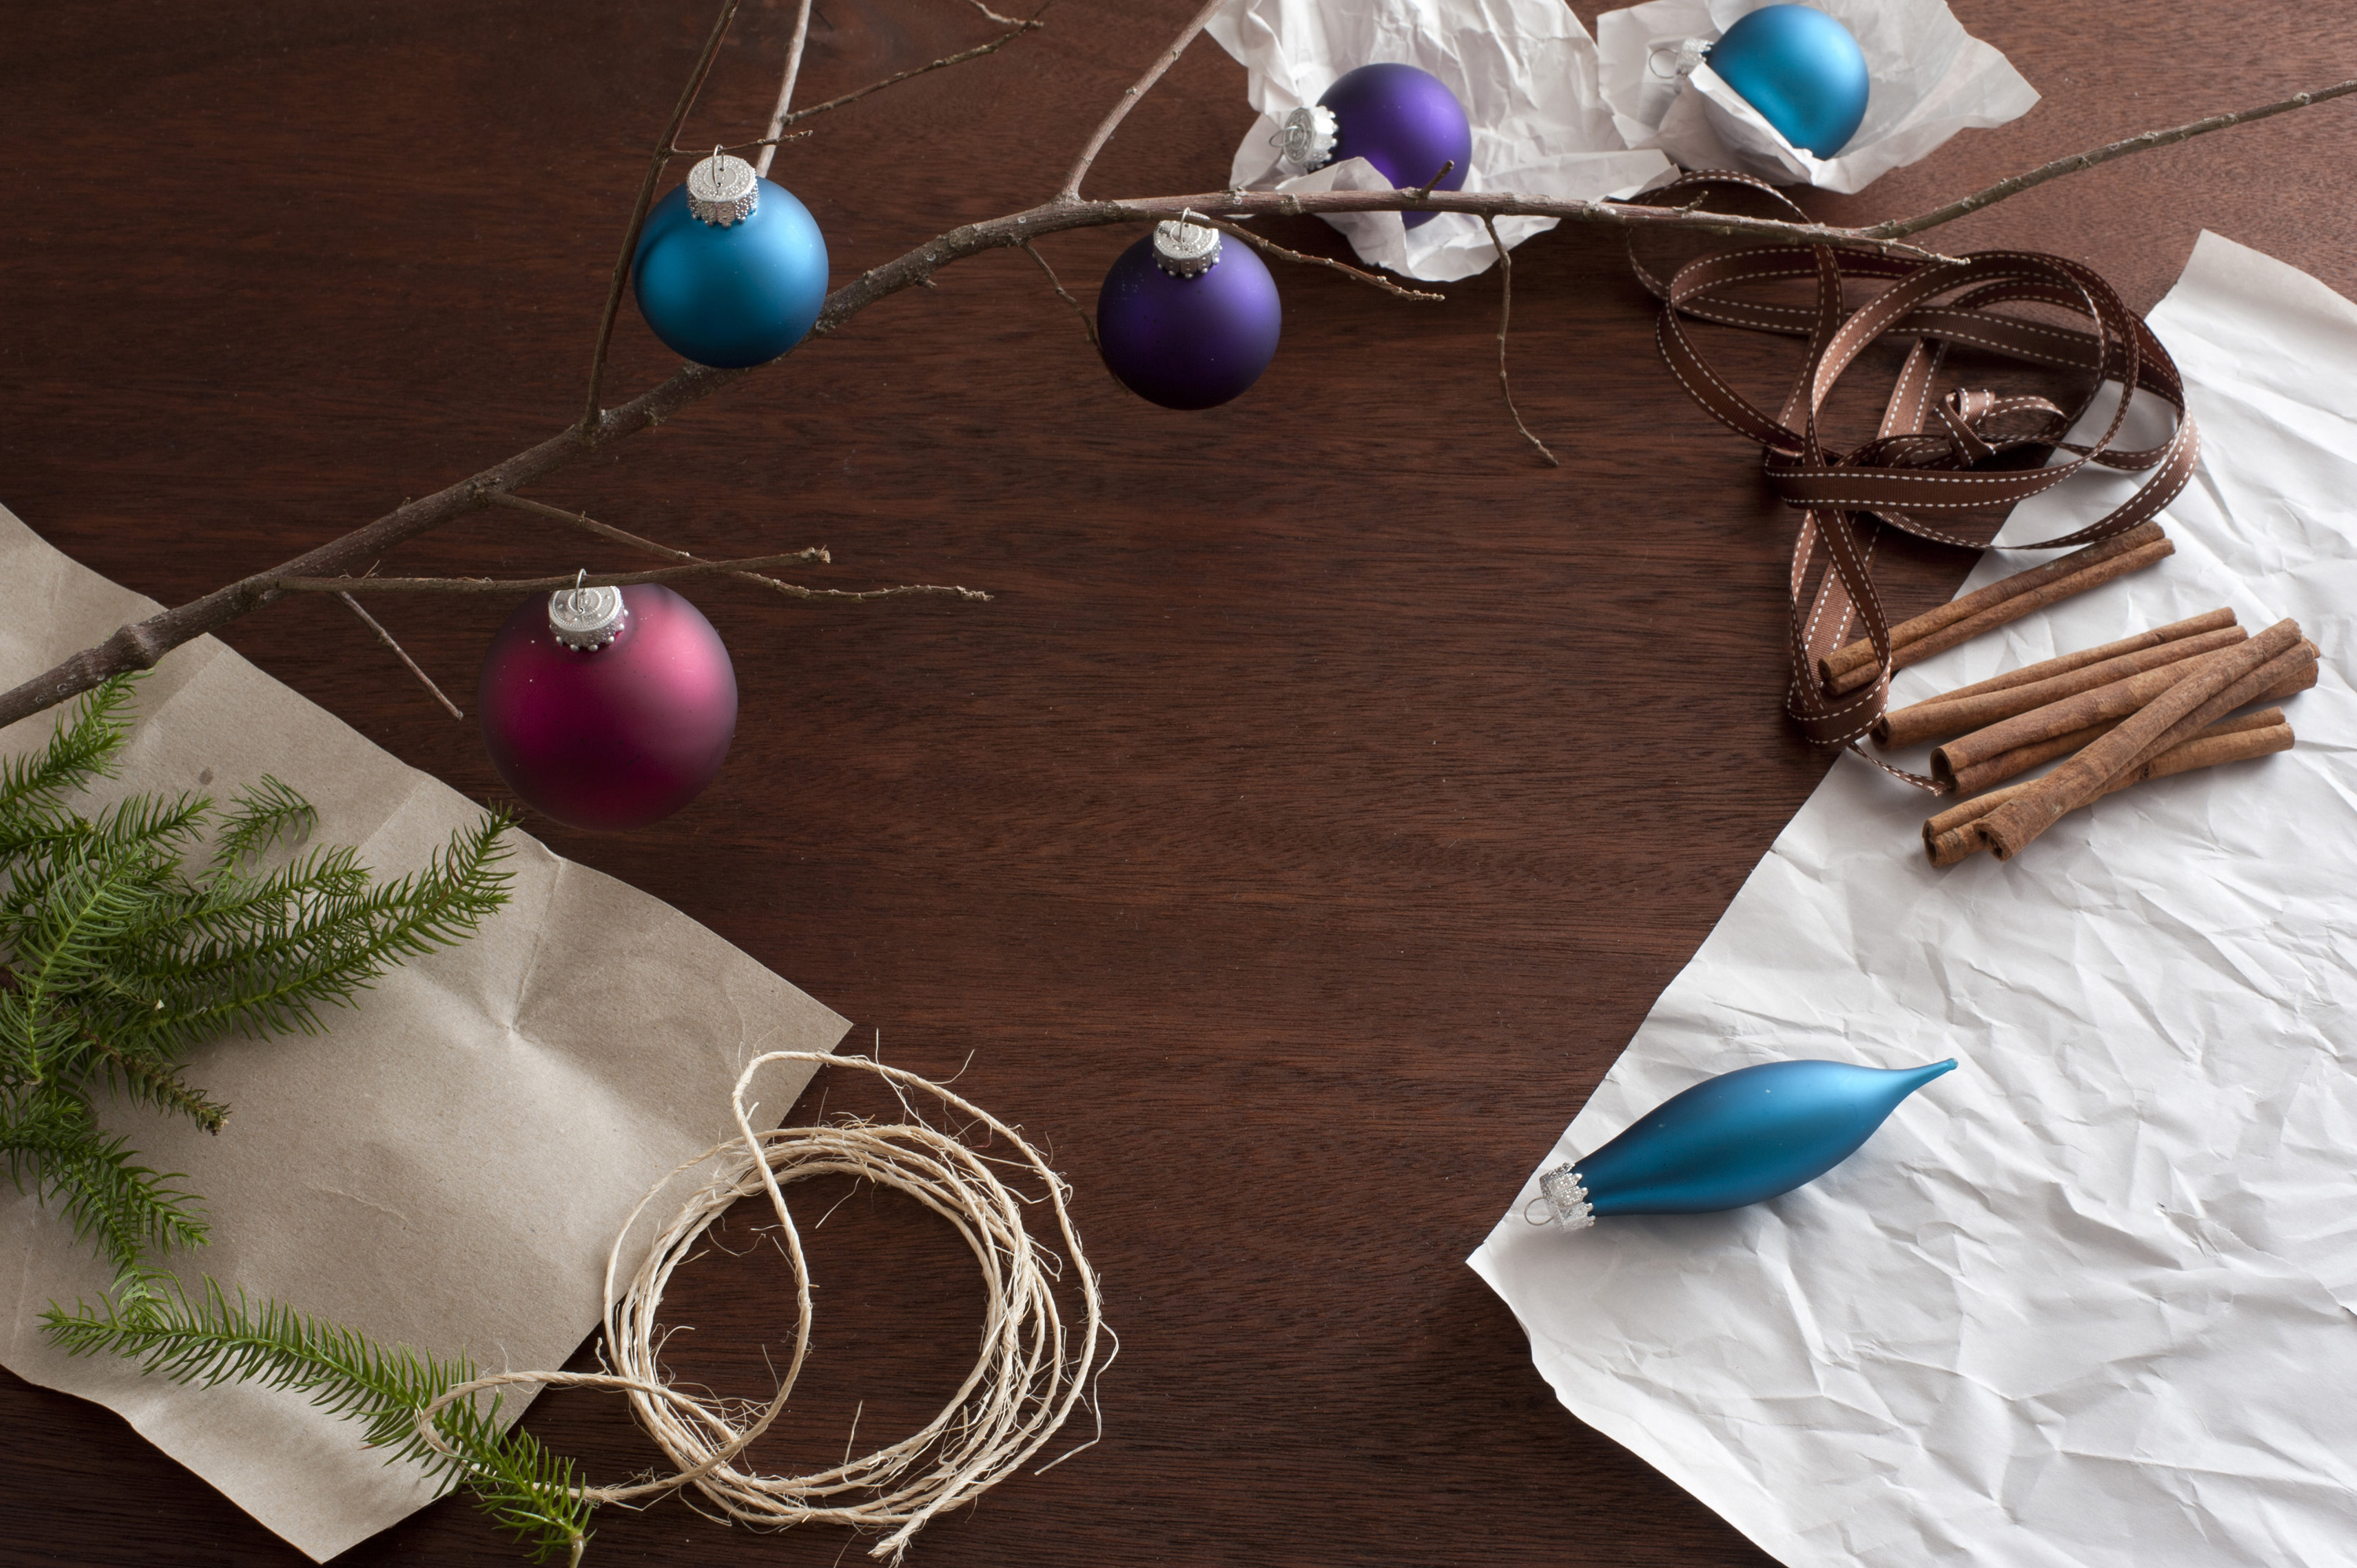 making decorations for christmas, background with copy space containing christmas handy crafts